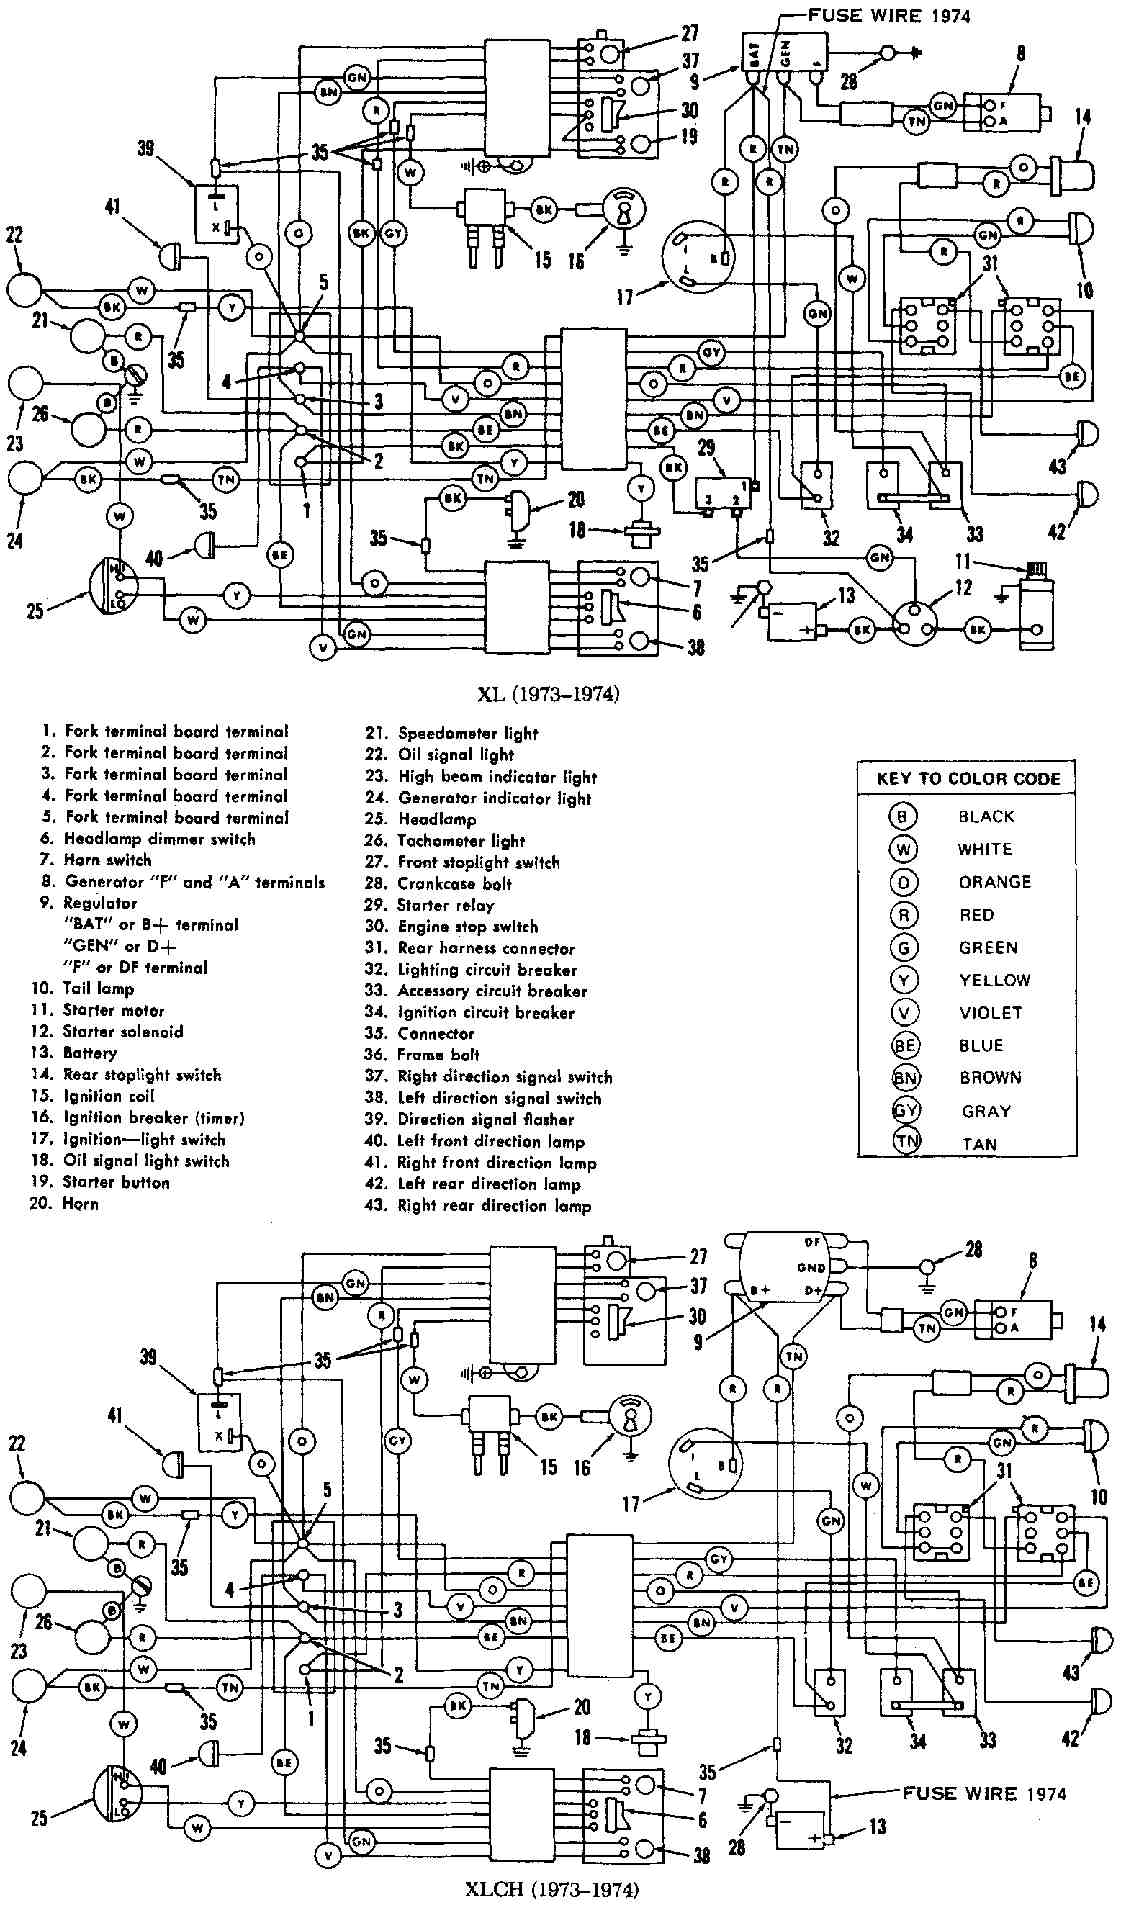 harley davidson motorcycle manuals pdf, wiring diagrams & fault codes harley-davidson electrical diagram harley davidson motorcycle wiring diagrams #11